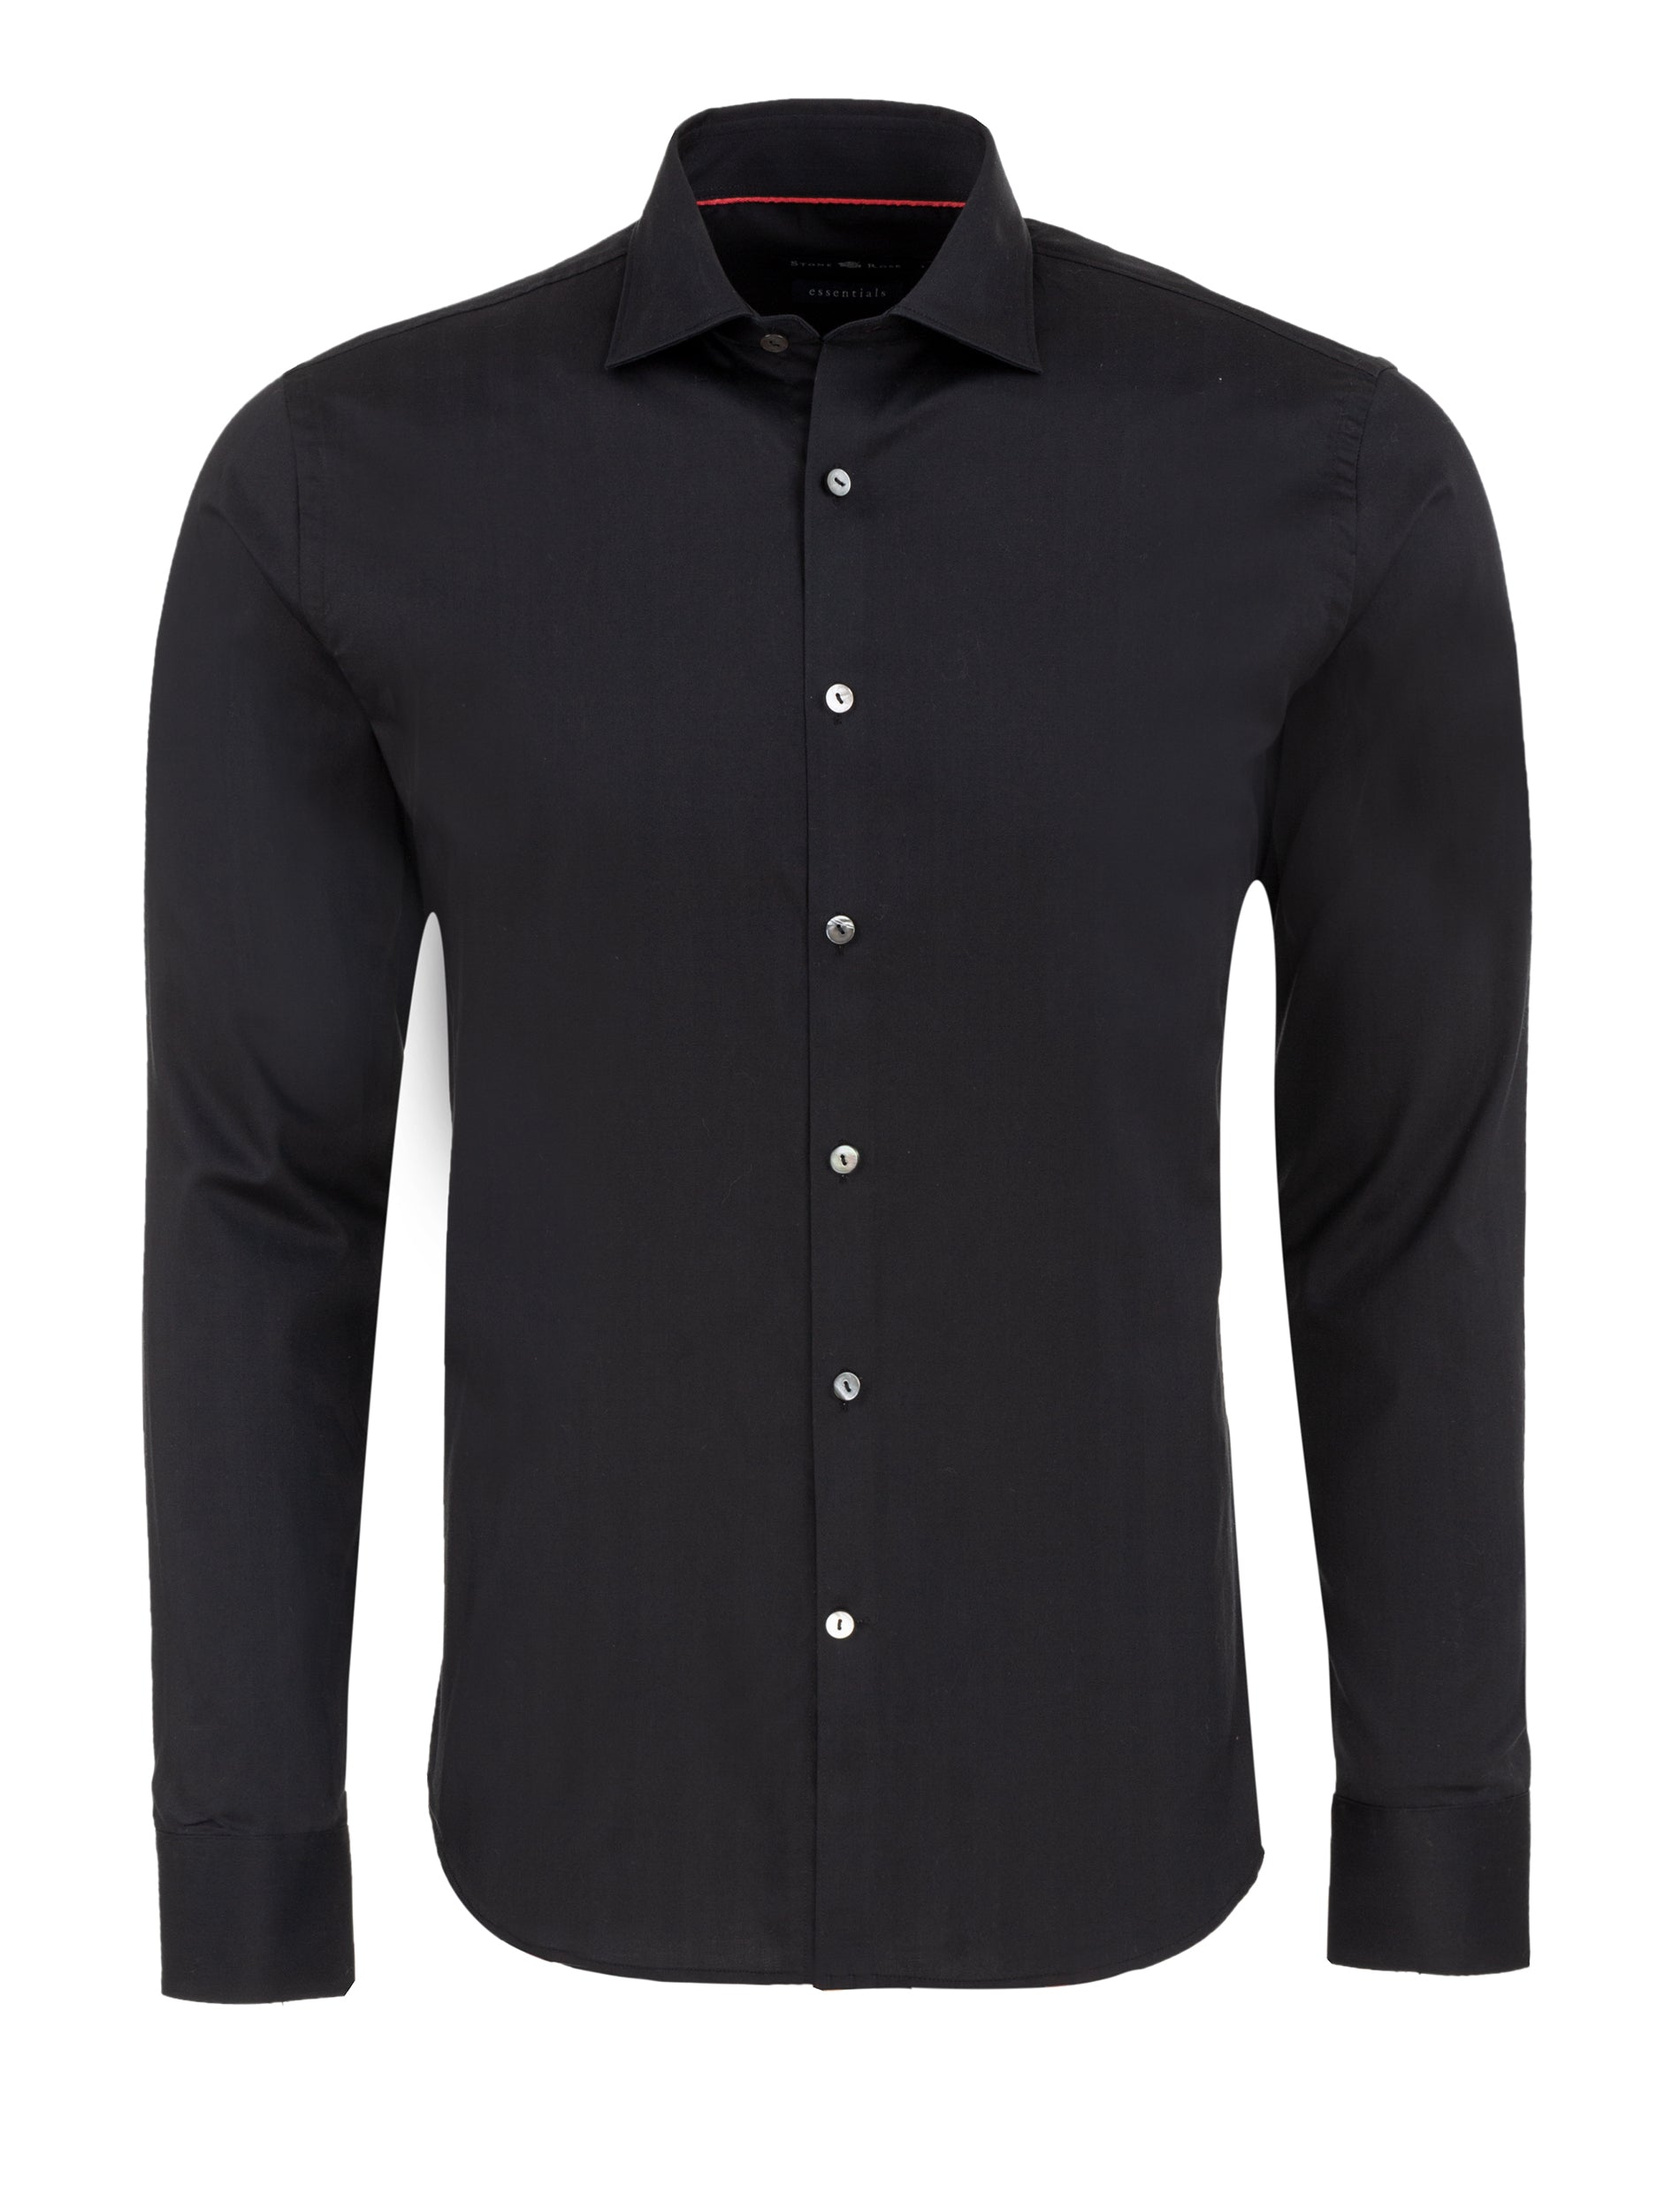 Herringbone Button Up Shirt in Black-Stone Rose